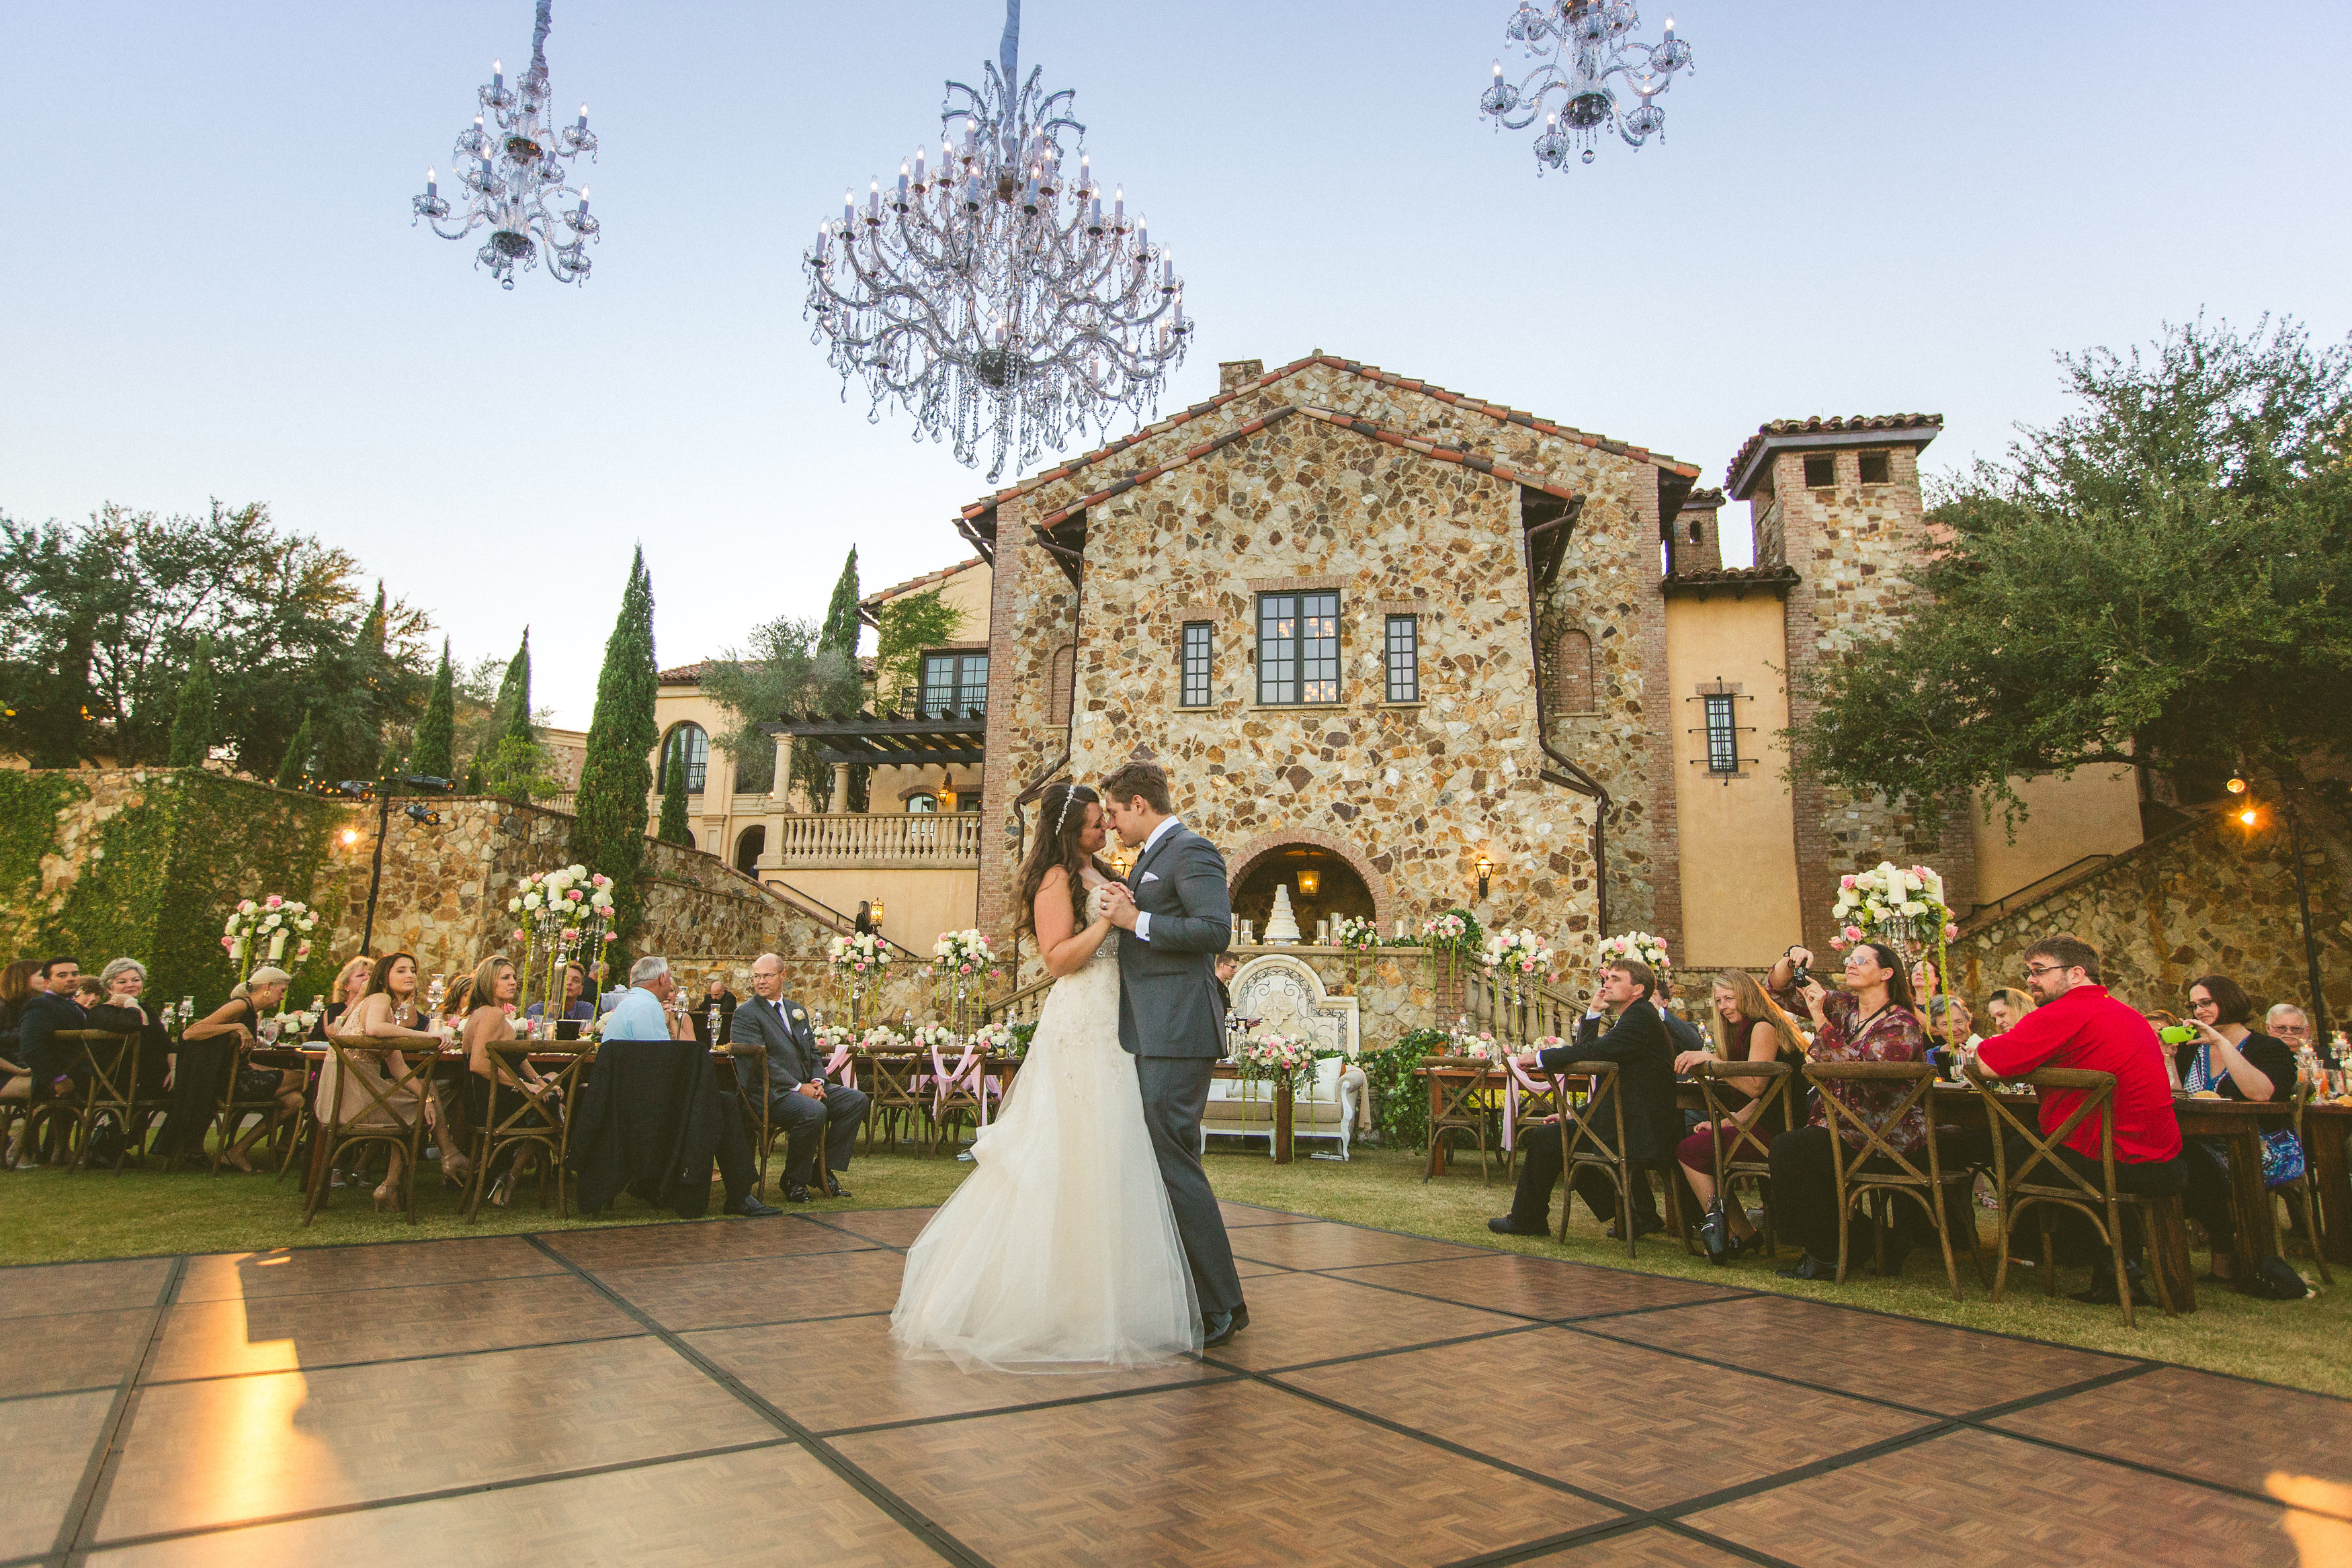 {Real Wedding} Amy And Brandon: A Fairy Tale Wedding In